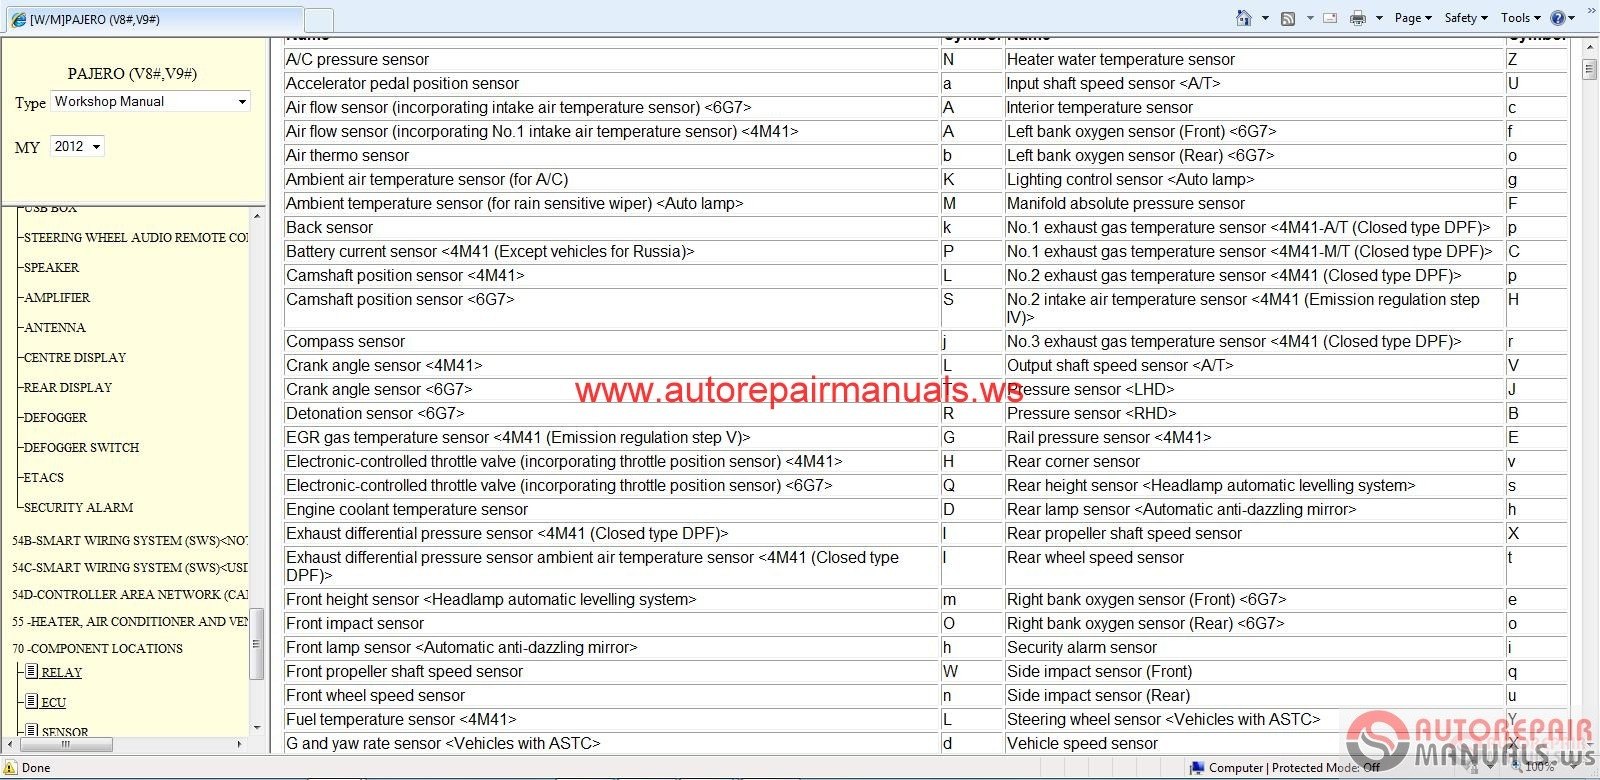 Mitsubishi Pajero Service Manual on Air Conditioner Wiring Diagrams